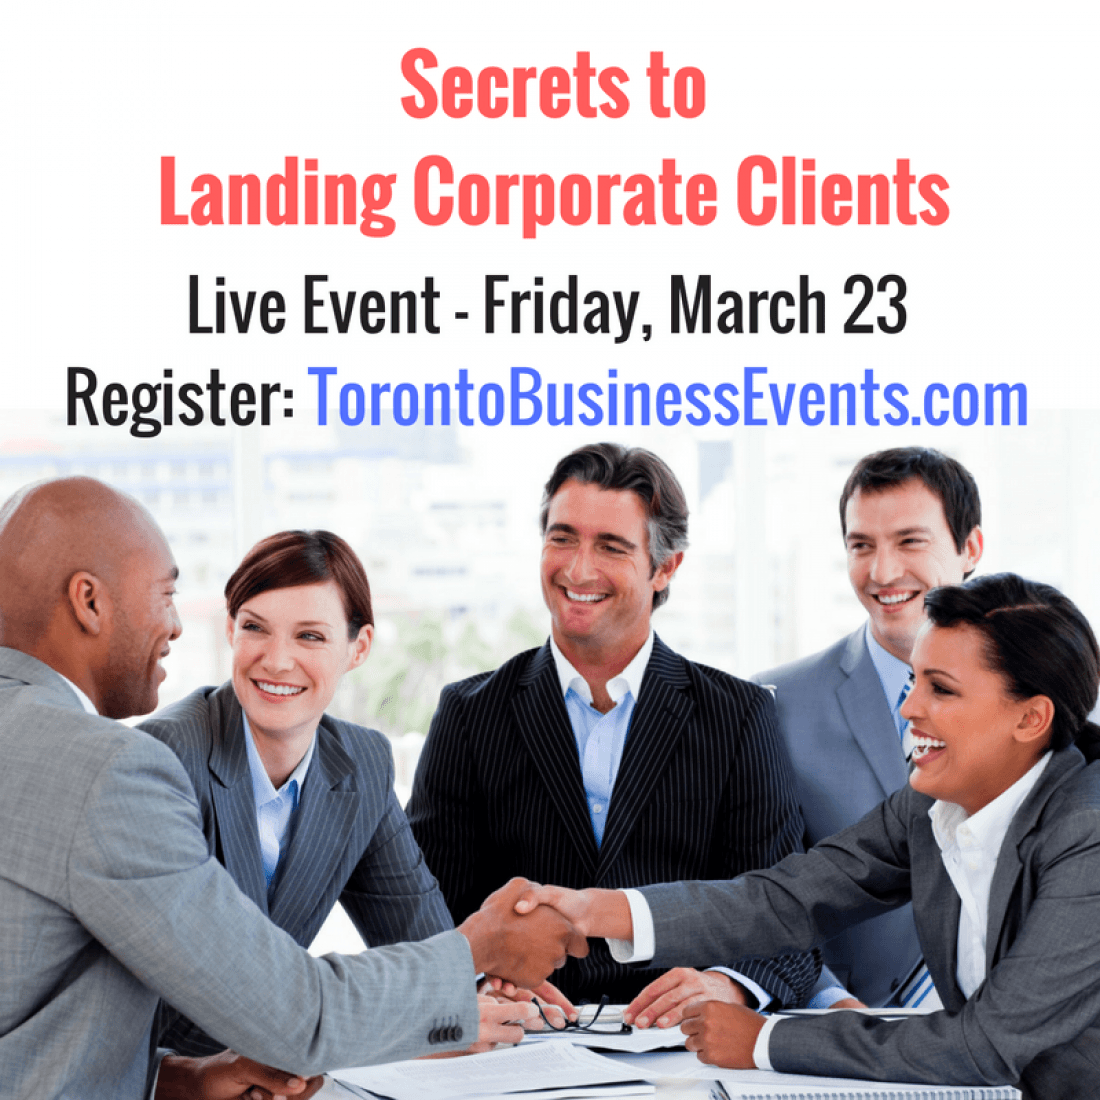 Secrets to Landing Corporate Clients